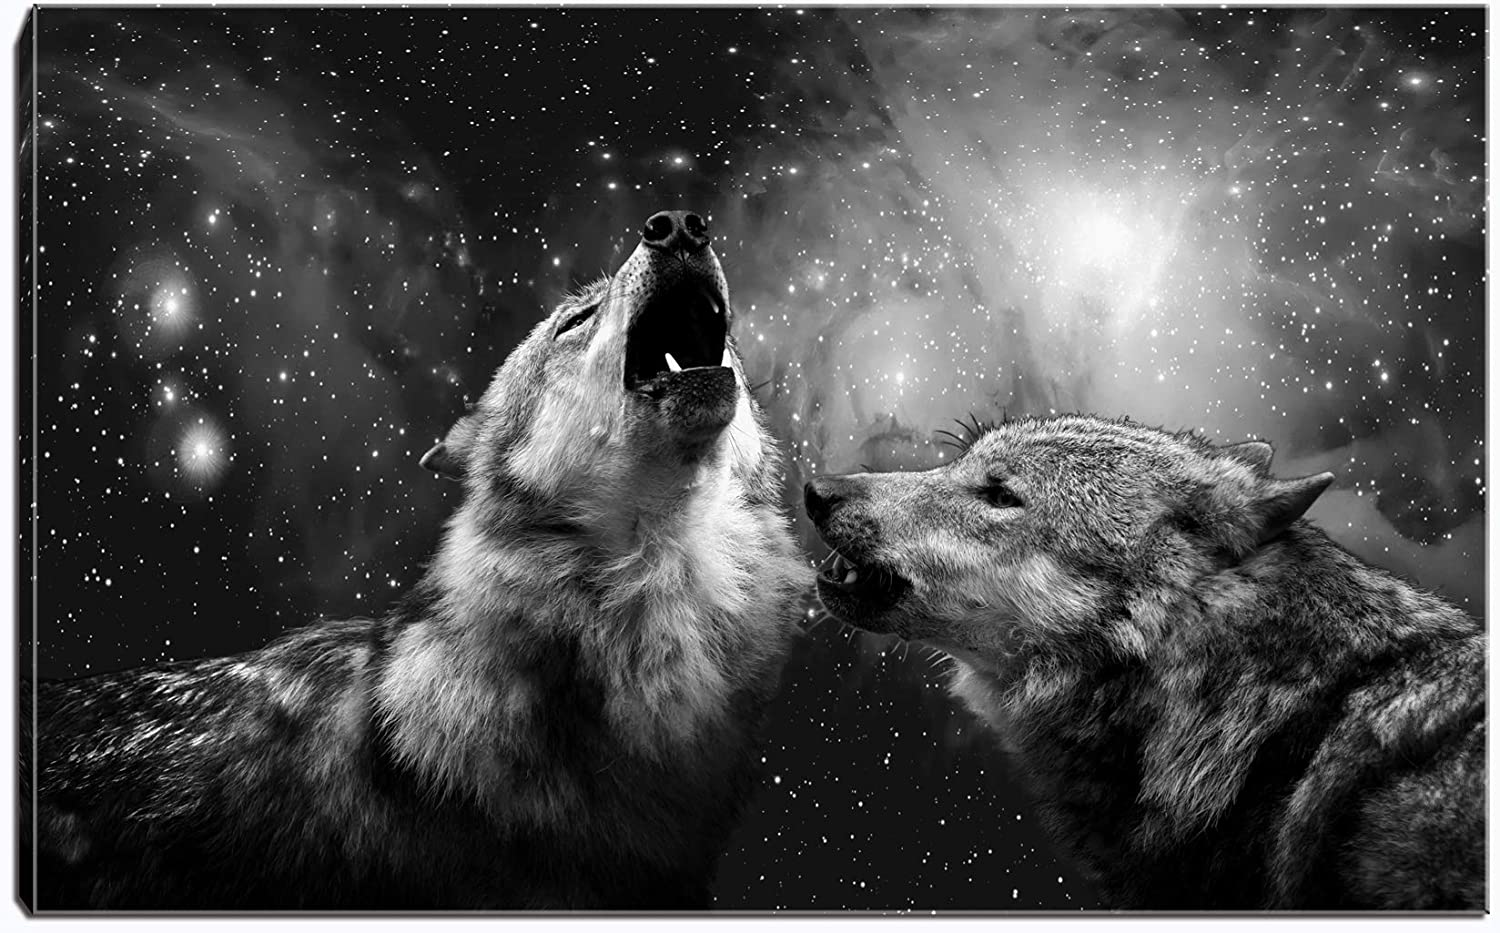 Wolf Under Sky Canvas Wall Art-Black and White Animal Painting Picture Stretched and Framed for Living Room Bedroom Bathroom Office Decor (Wolf Under Sky)¡­